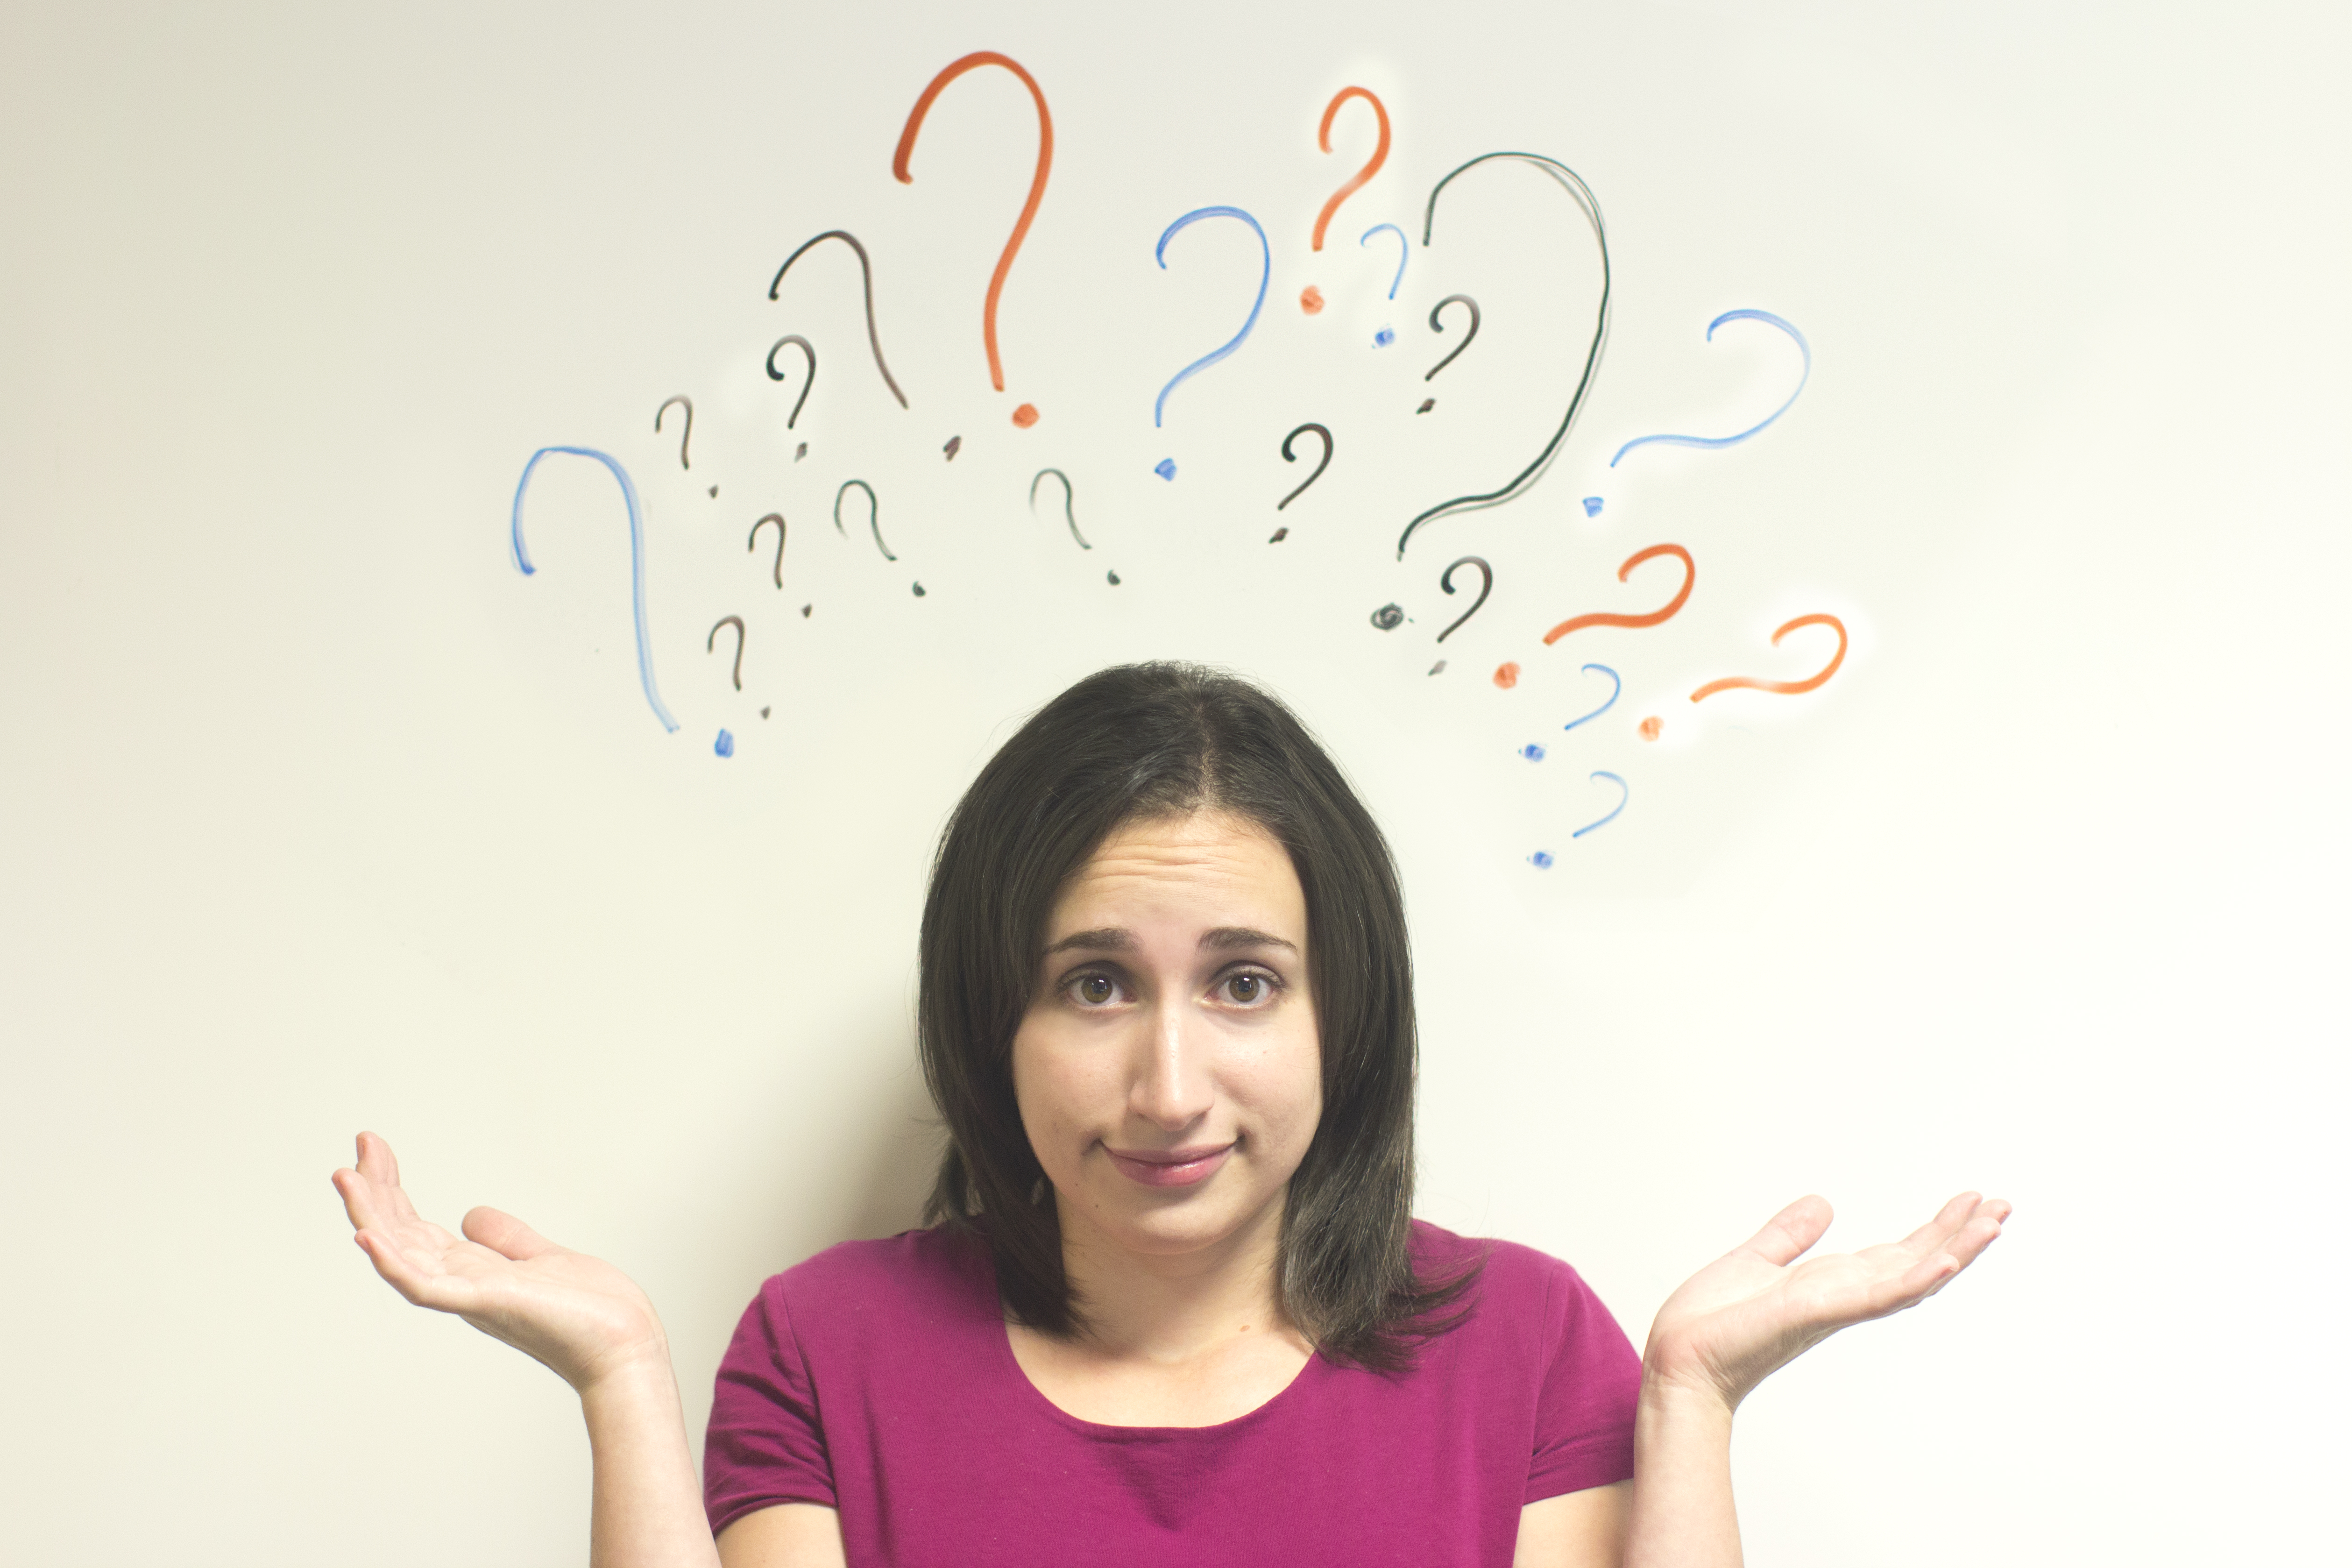 Confused woman with questions